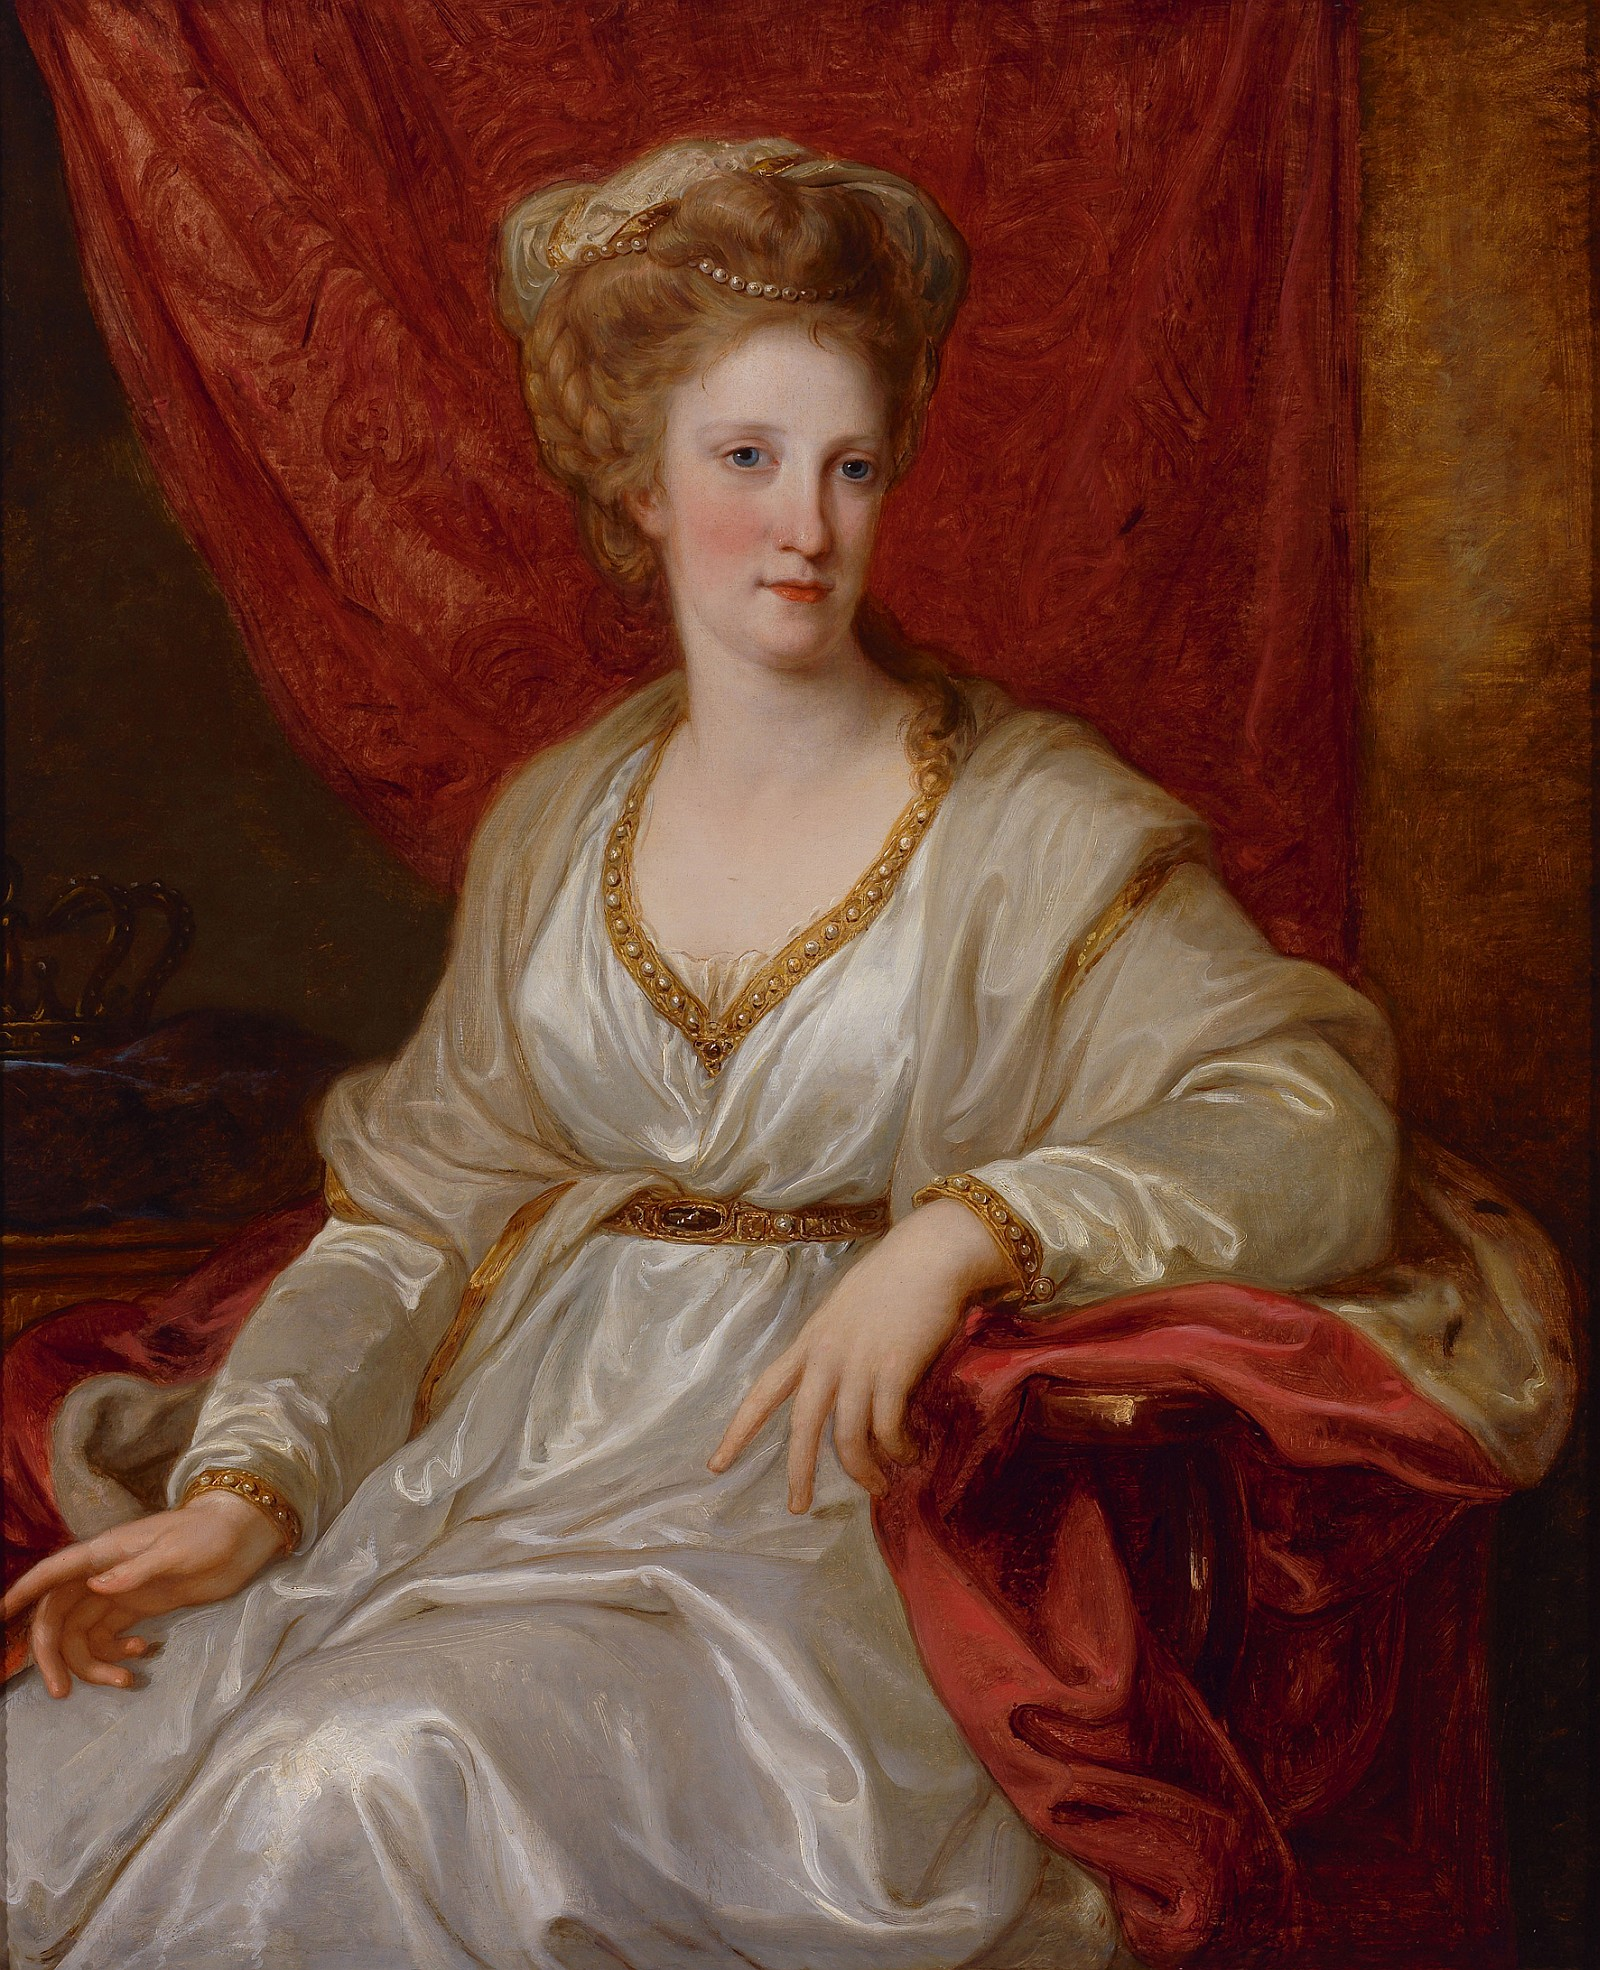 https://i2.wp.com/upload.wikimedia.org/wikipedia/commons/1/11/Angelika_Kauffmann_Portrait_Maria_Karoline_von_%C3%96sterreich_VLM_off.jpg